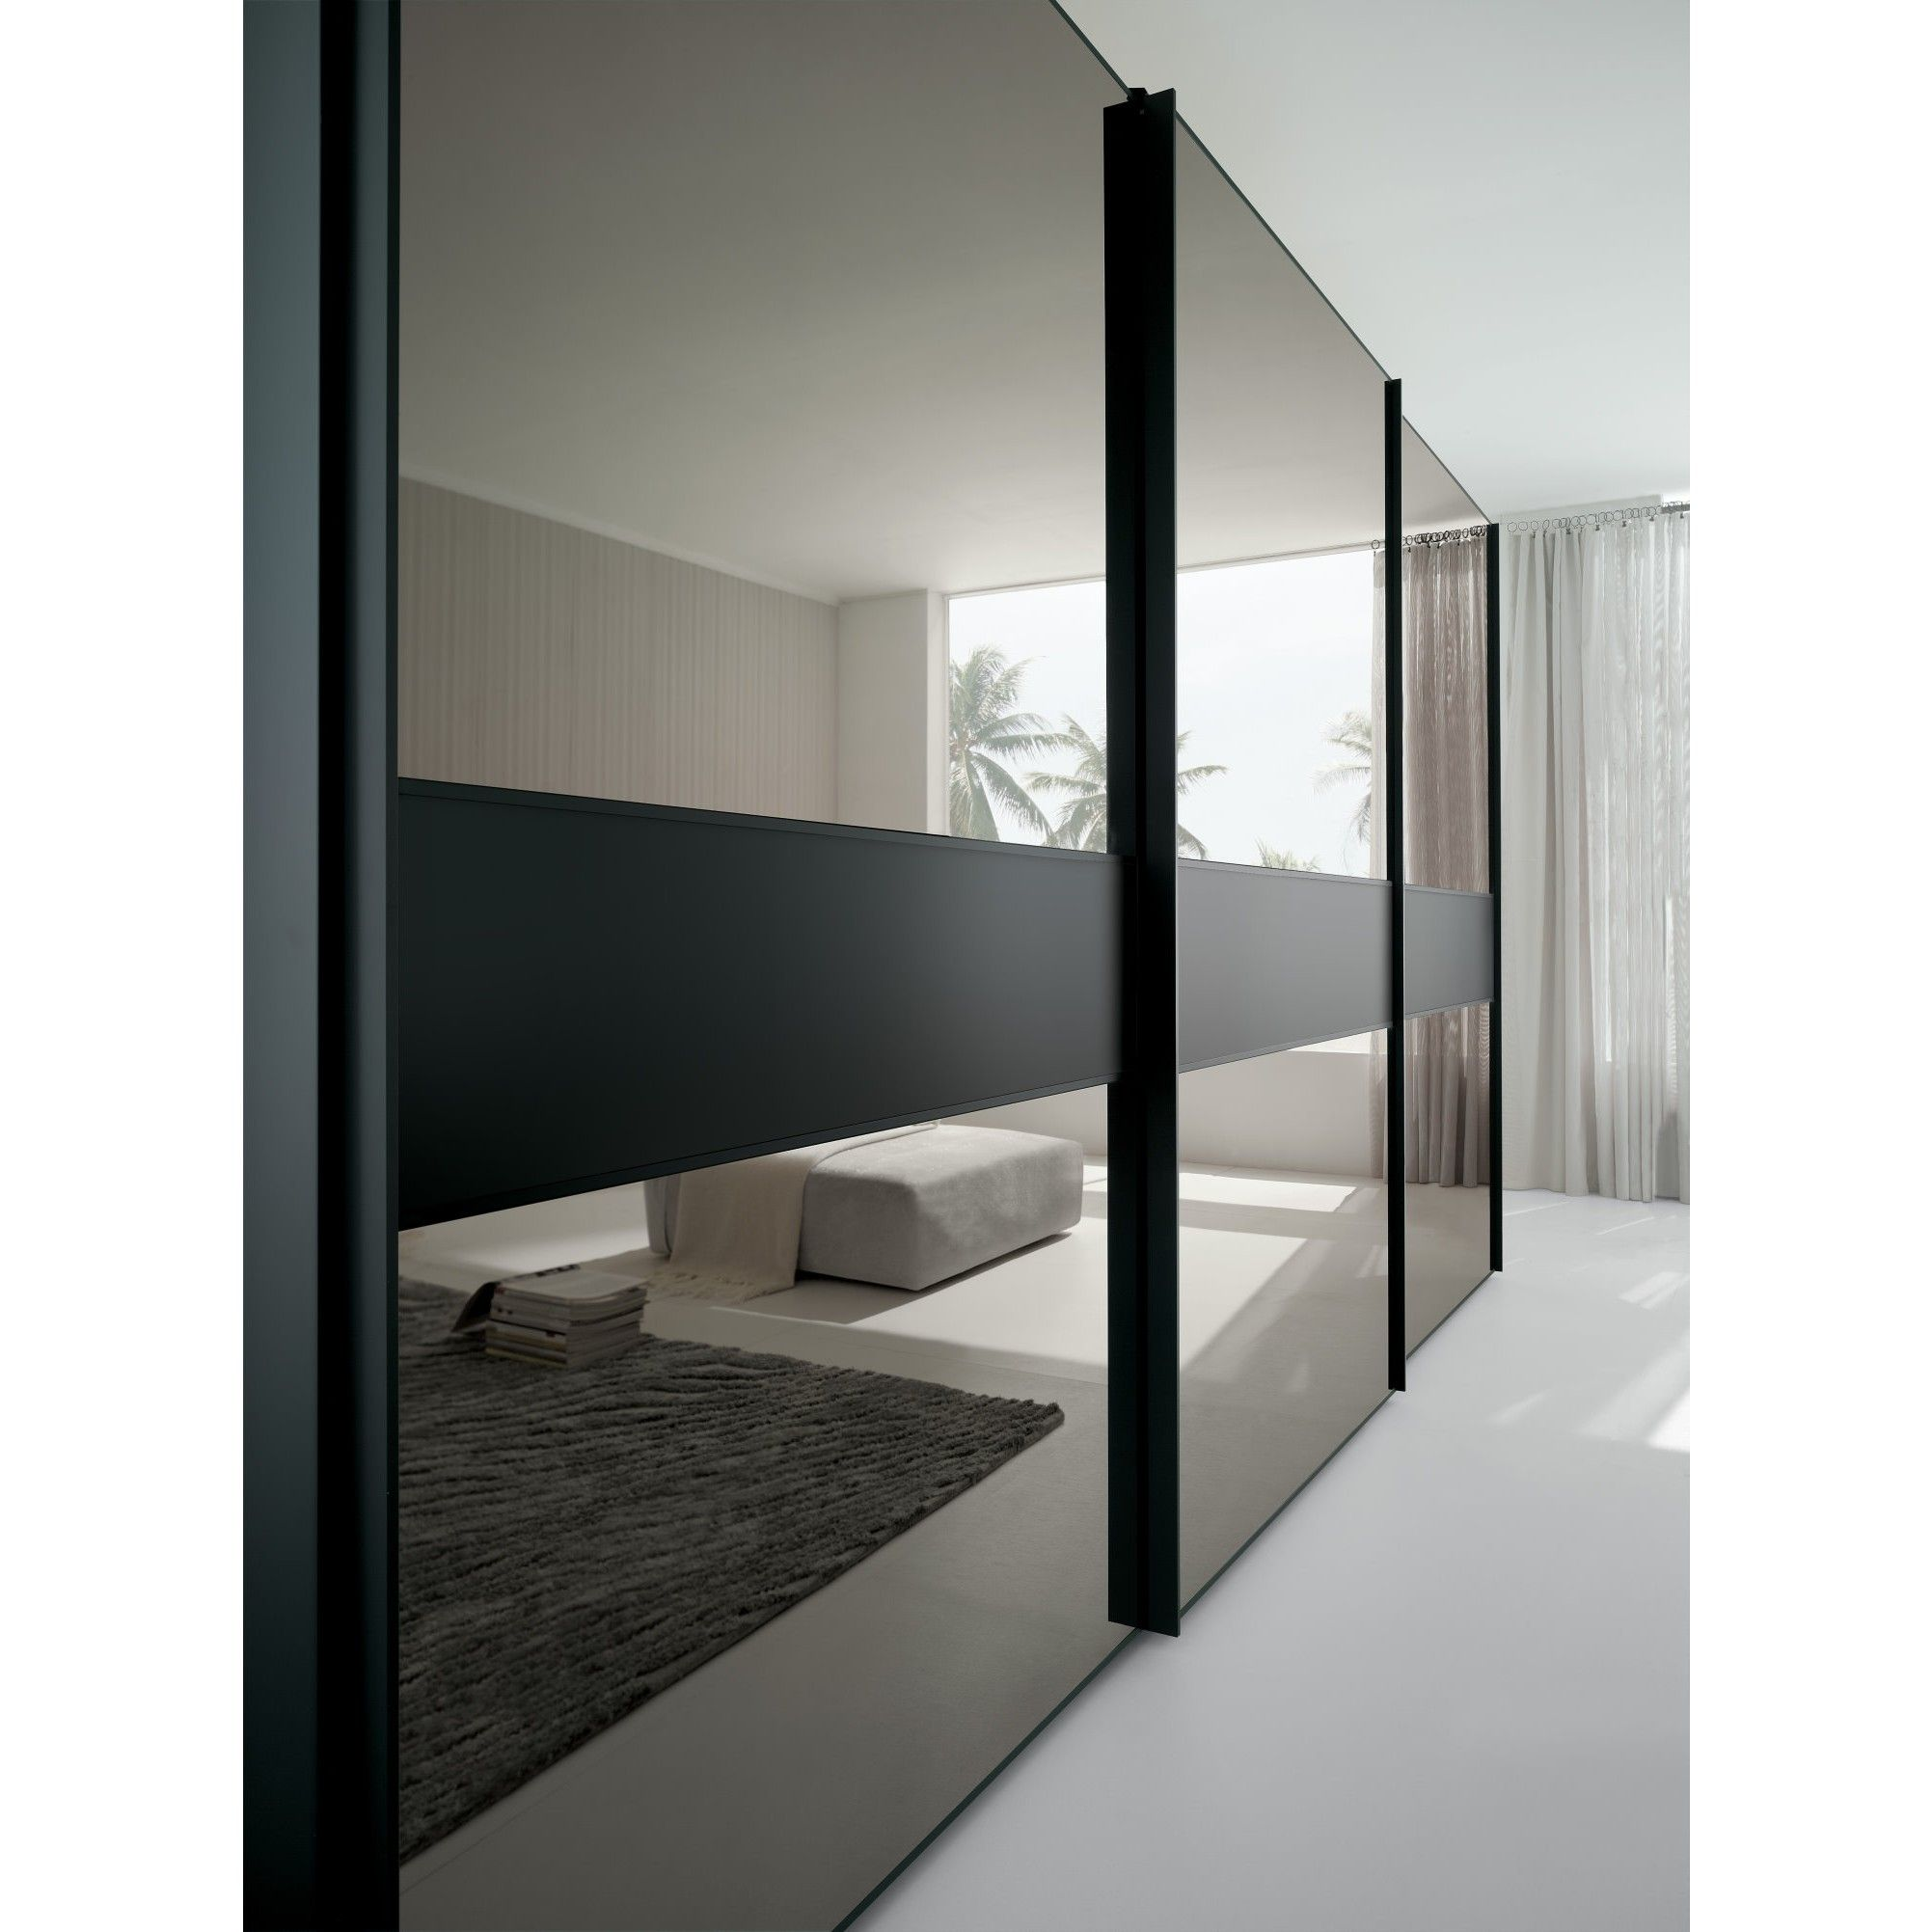 feng shui comment occulter un miroir dans une chambre portes en miroir brilliant pour armoire. Black Bedroom Furniture Sets. Home Design Ideas